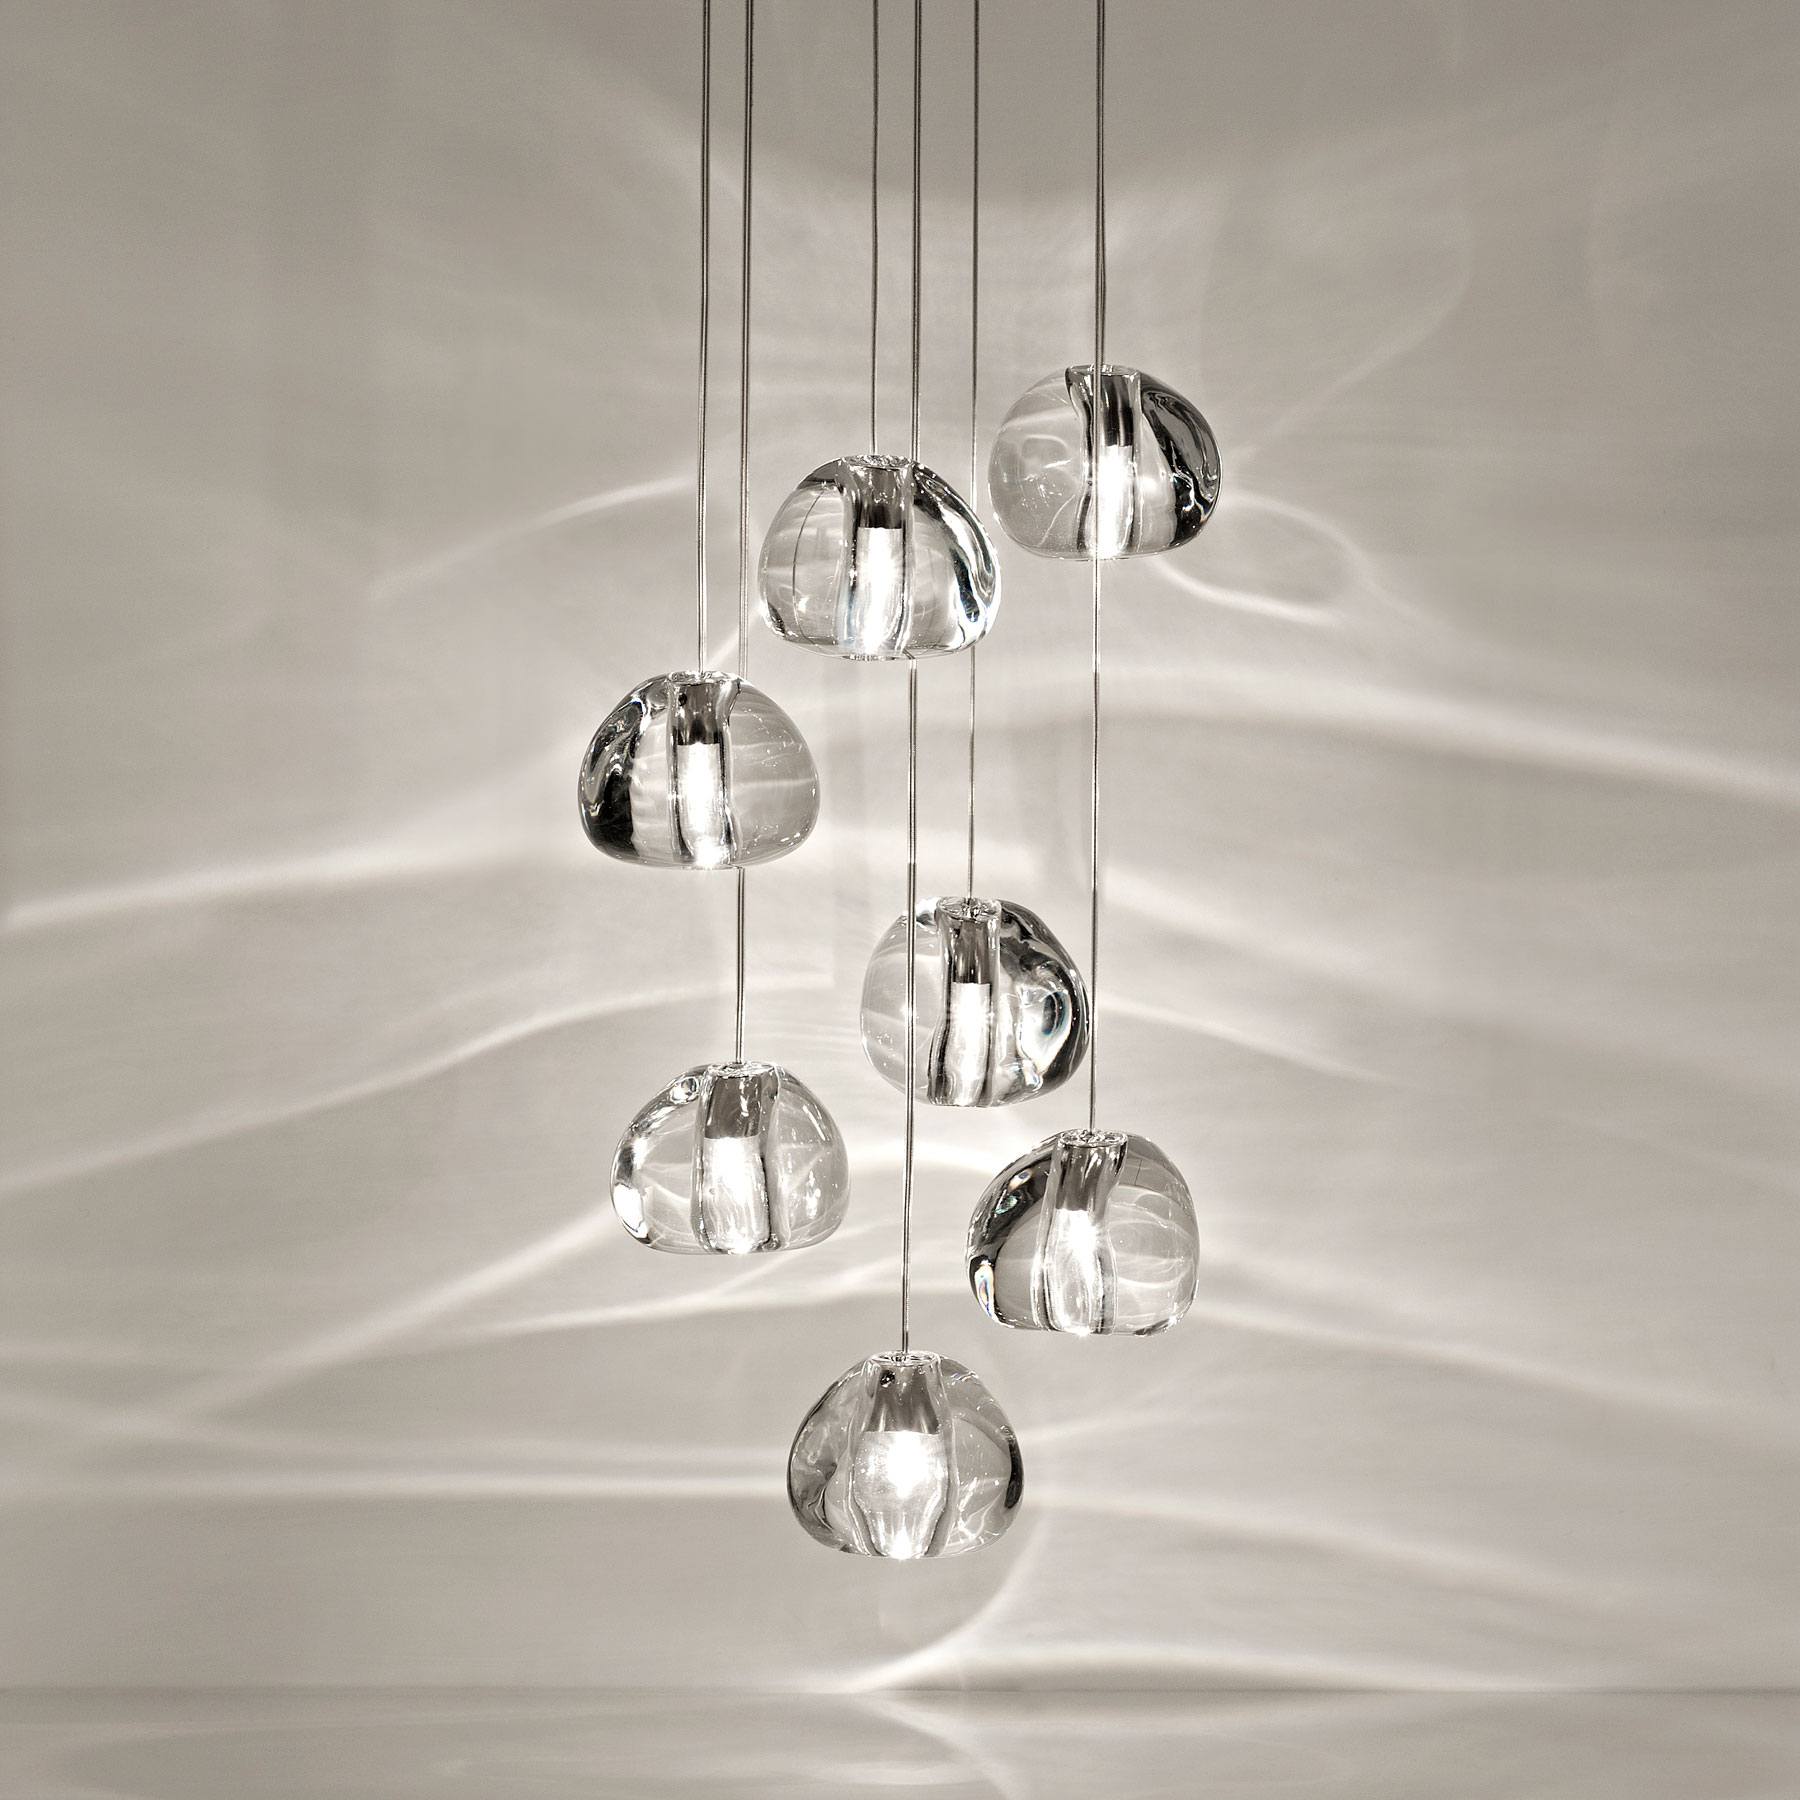 Mizu Crystal Glass Chandelier Landscape Lamps Led Lighting